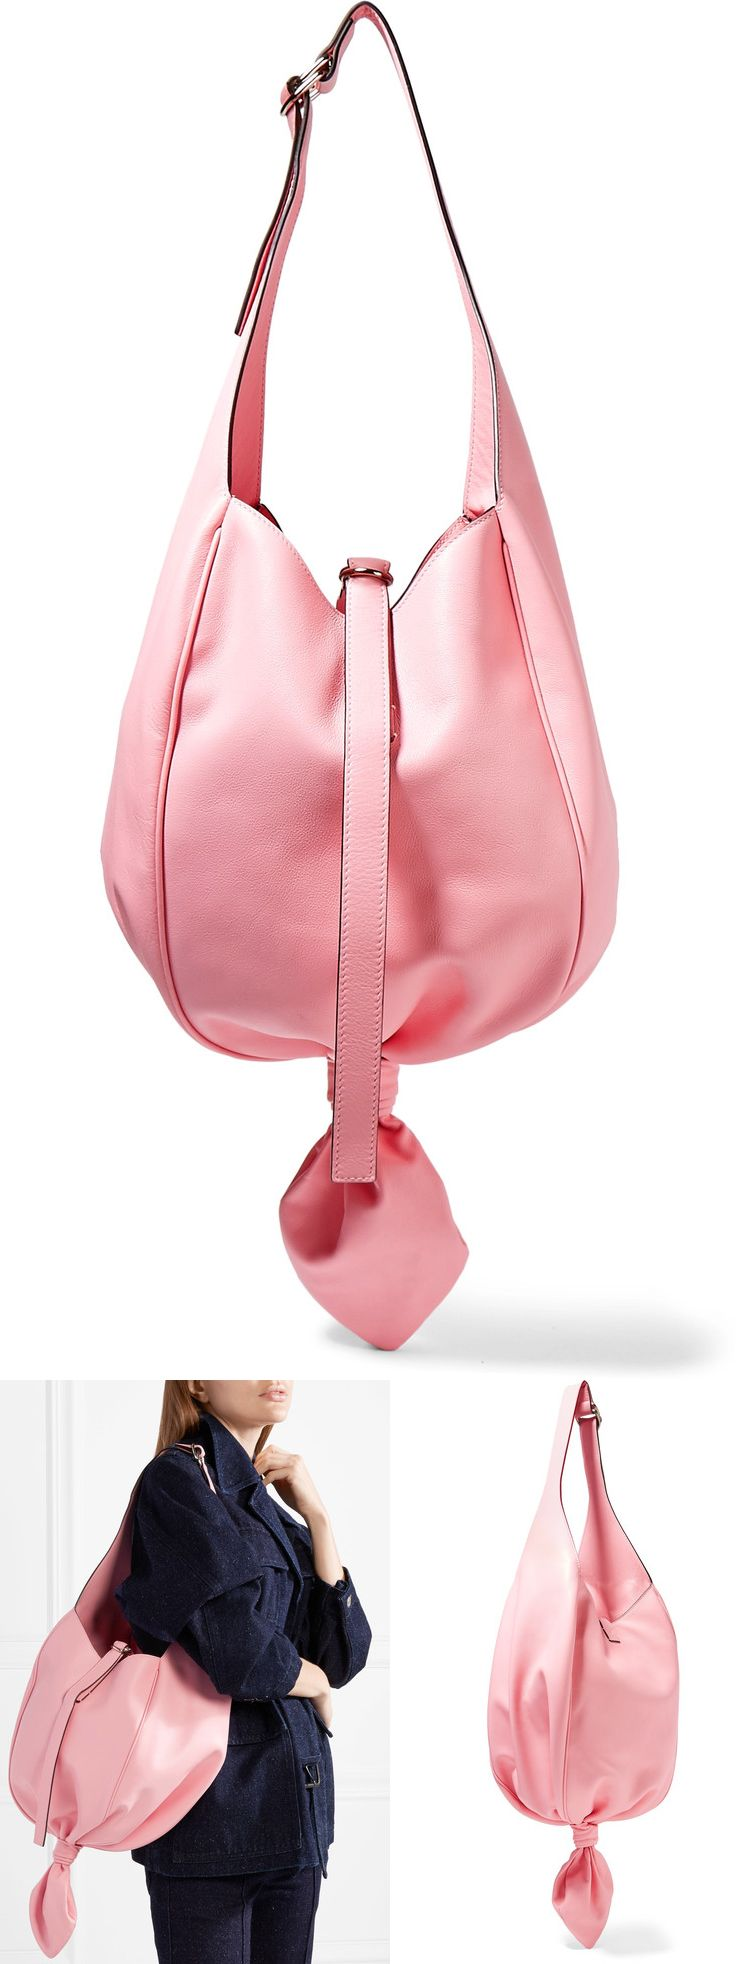 "Knot Leather Shoulder Bag - Baby pink. JW Anderson is known for creating ""thought-provoking silhouettes"" and this slouchy bag is no different. Designed with a sculptural knot at bottom, it's made in baby-pink leather, detailed with  adjustable shoulder strap. Love the candy pink colour. Wear with Brights for Summer, or look pretty as a picture out shopping with your camel, grey or white coat in winter. #shopper #bags #wearpink #thinkpink #fashion #fashionista #bagaddict #affiliatelink…"